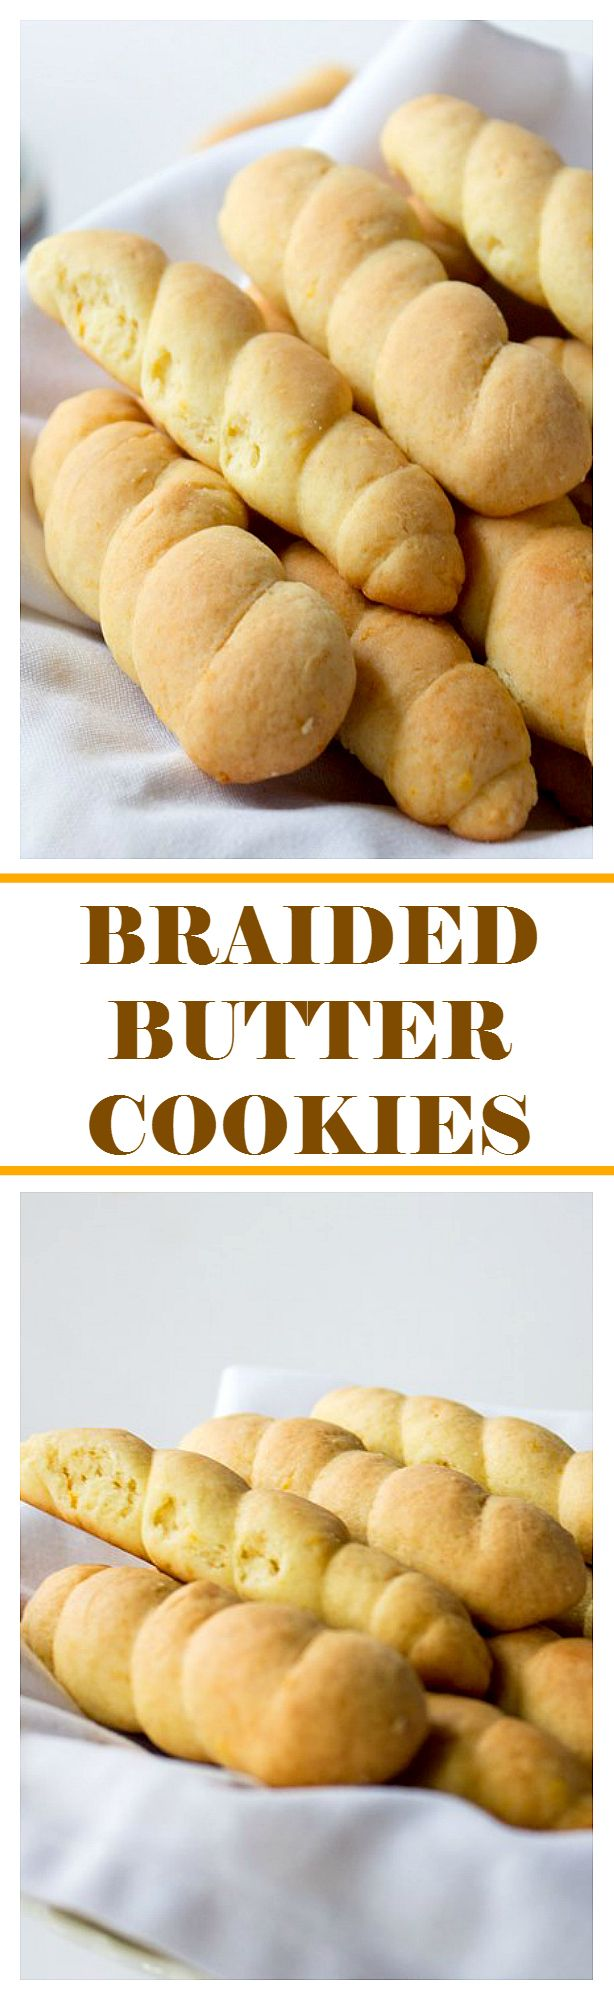 Braided Butter Cookies | www.diethood.com | Beautiful, traditional Easter Cookies that are soft to the bite, deliciously sweet, and will satisfy even the strongest cookie cravings. They go very well with coffee or tea!